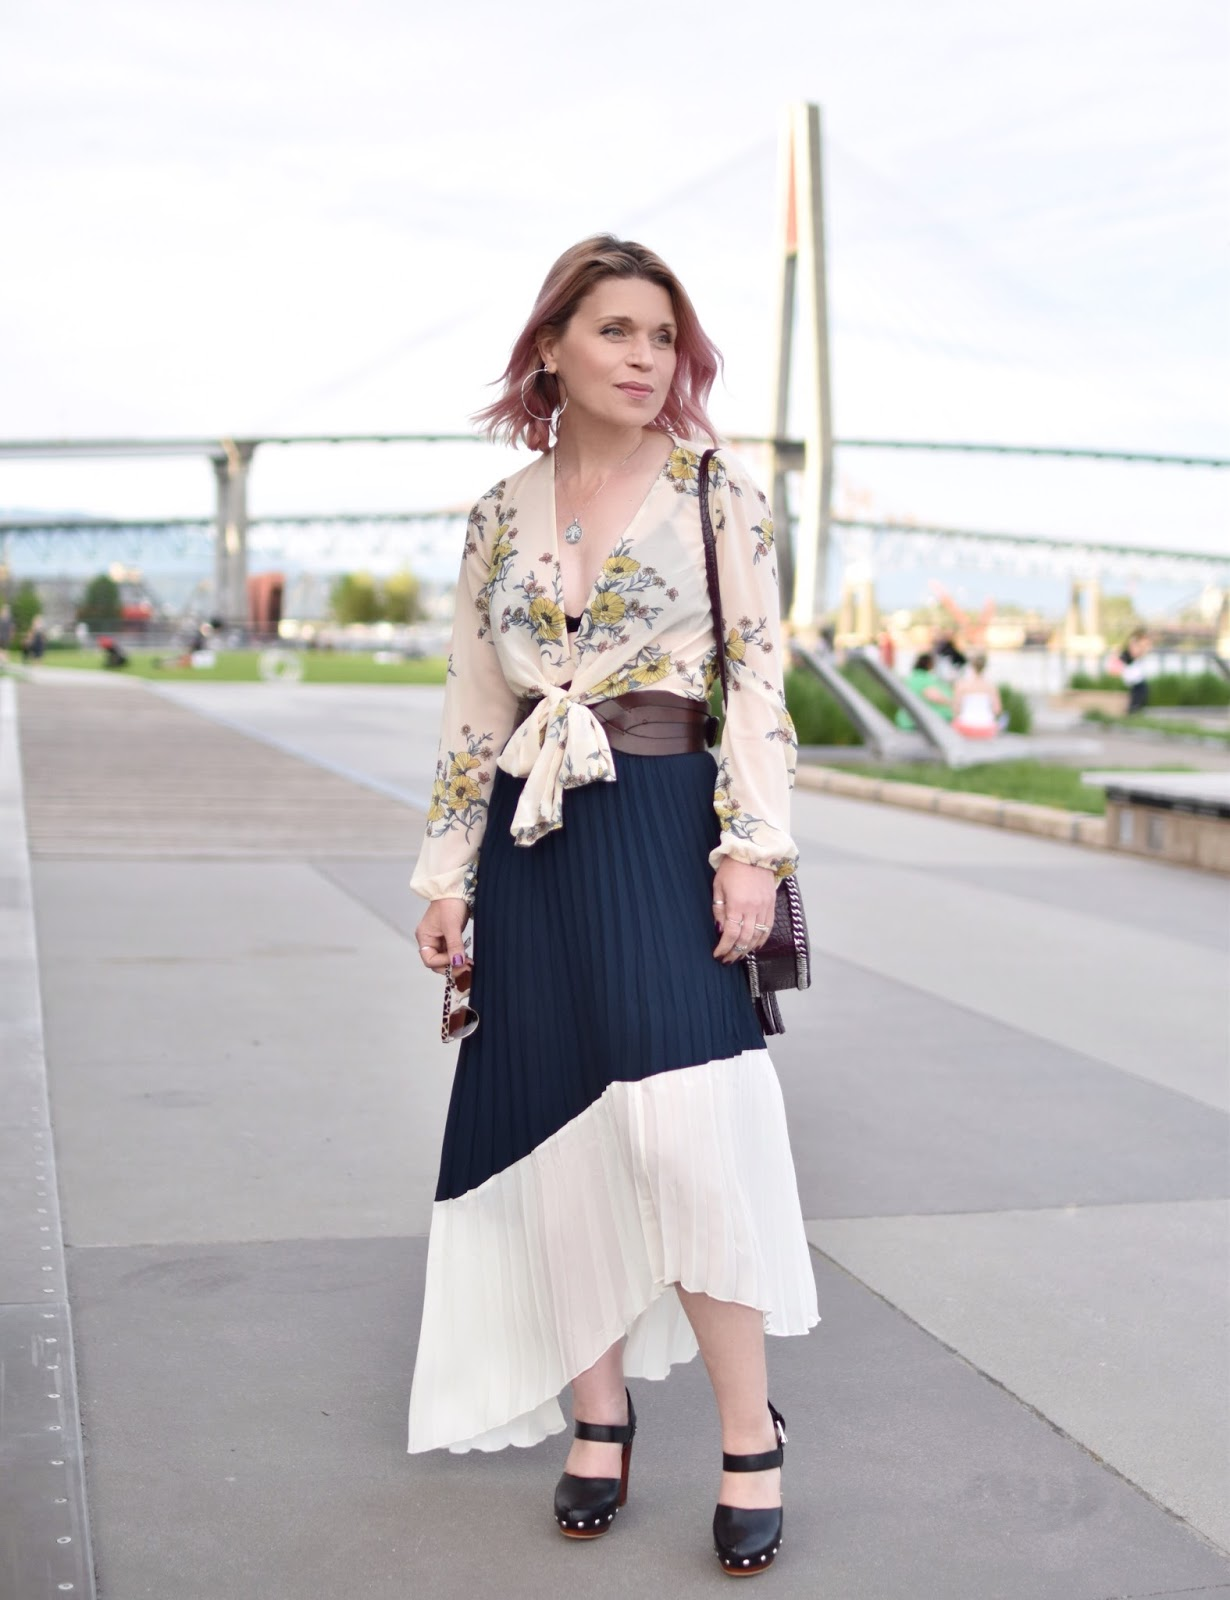 Pleats and thank-you:  styling an asymmetrical pleated maxi skirt with a floral blouse, corset belt, and mary-jane heels